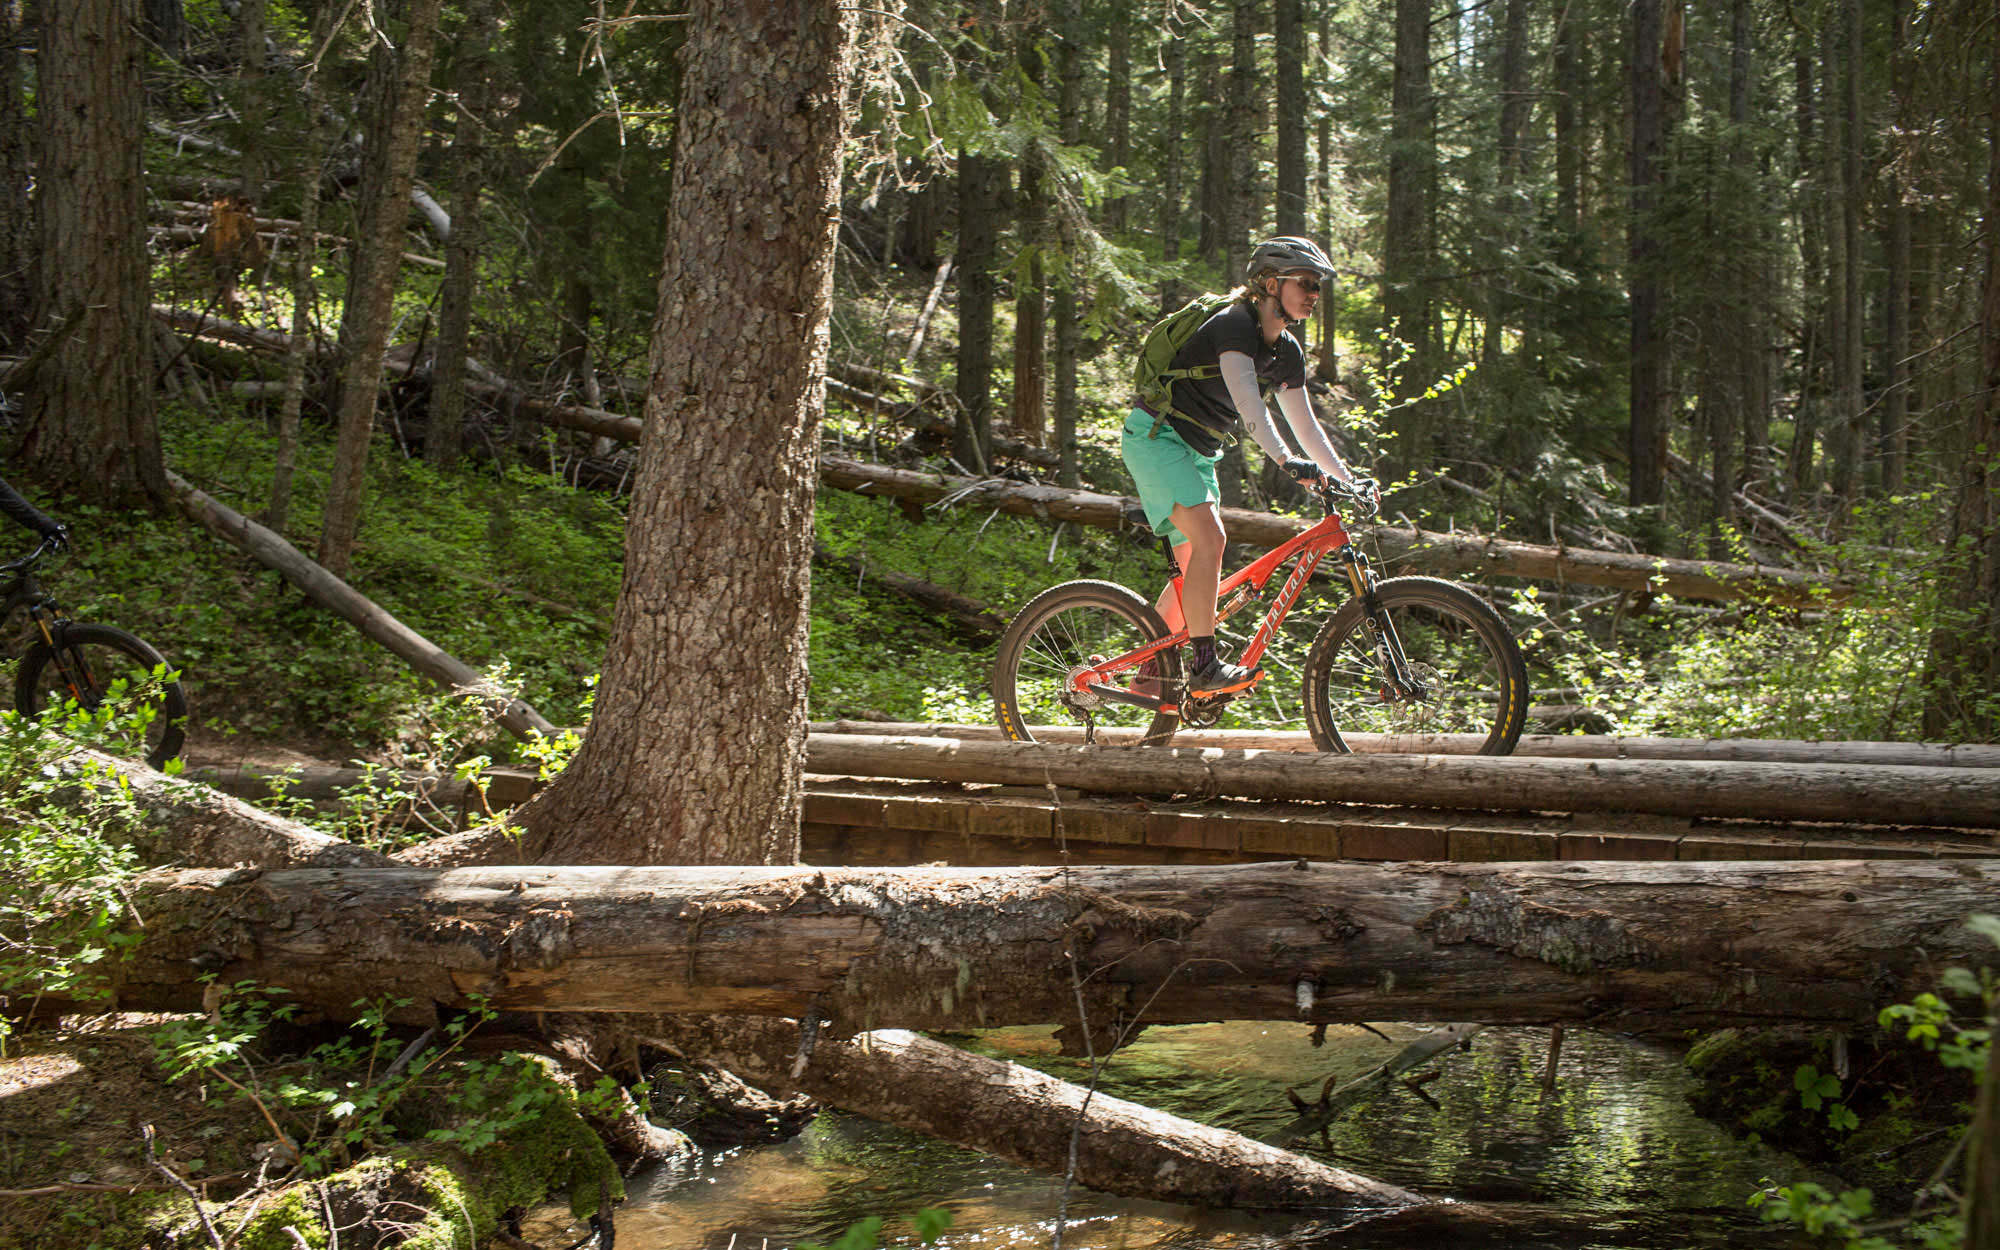 A mountain biker on an orange bike pedals along fallen trees in the forest.